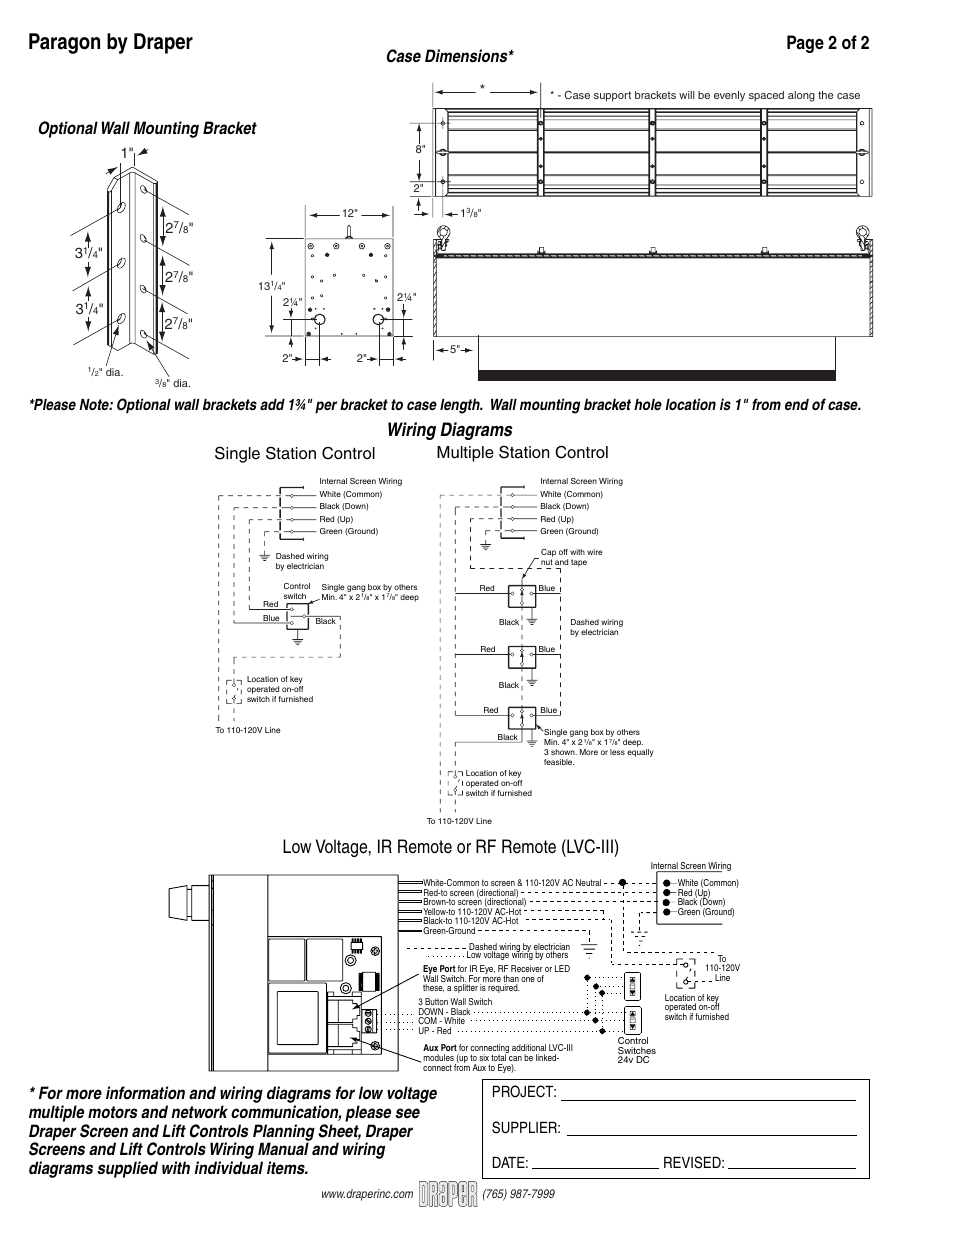 paragon by draper page 2 of 2 wiring diagrams draper paragon rh manualsdir com